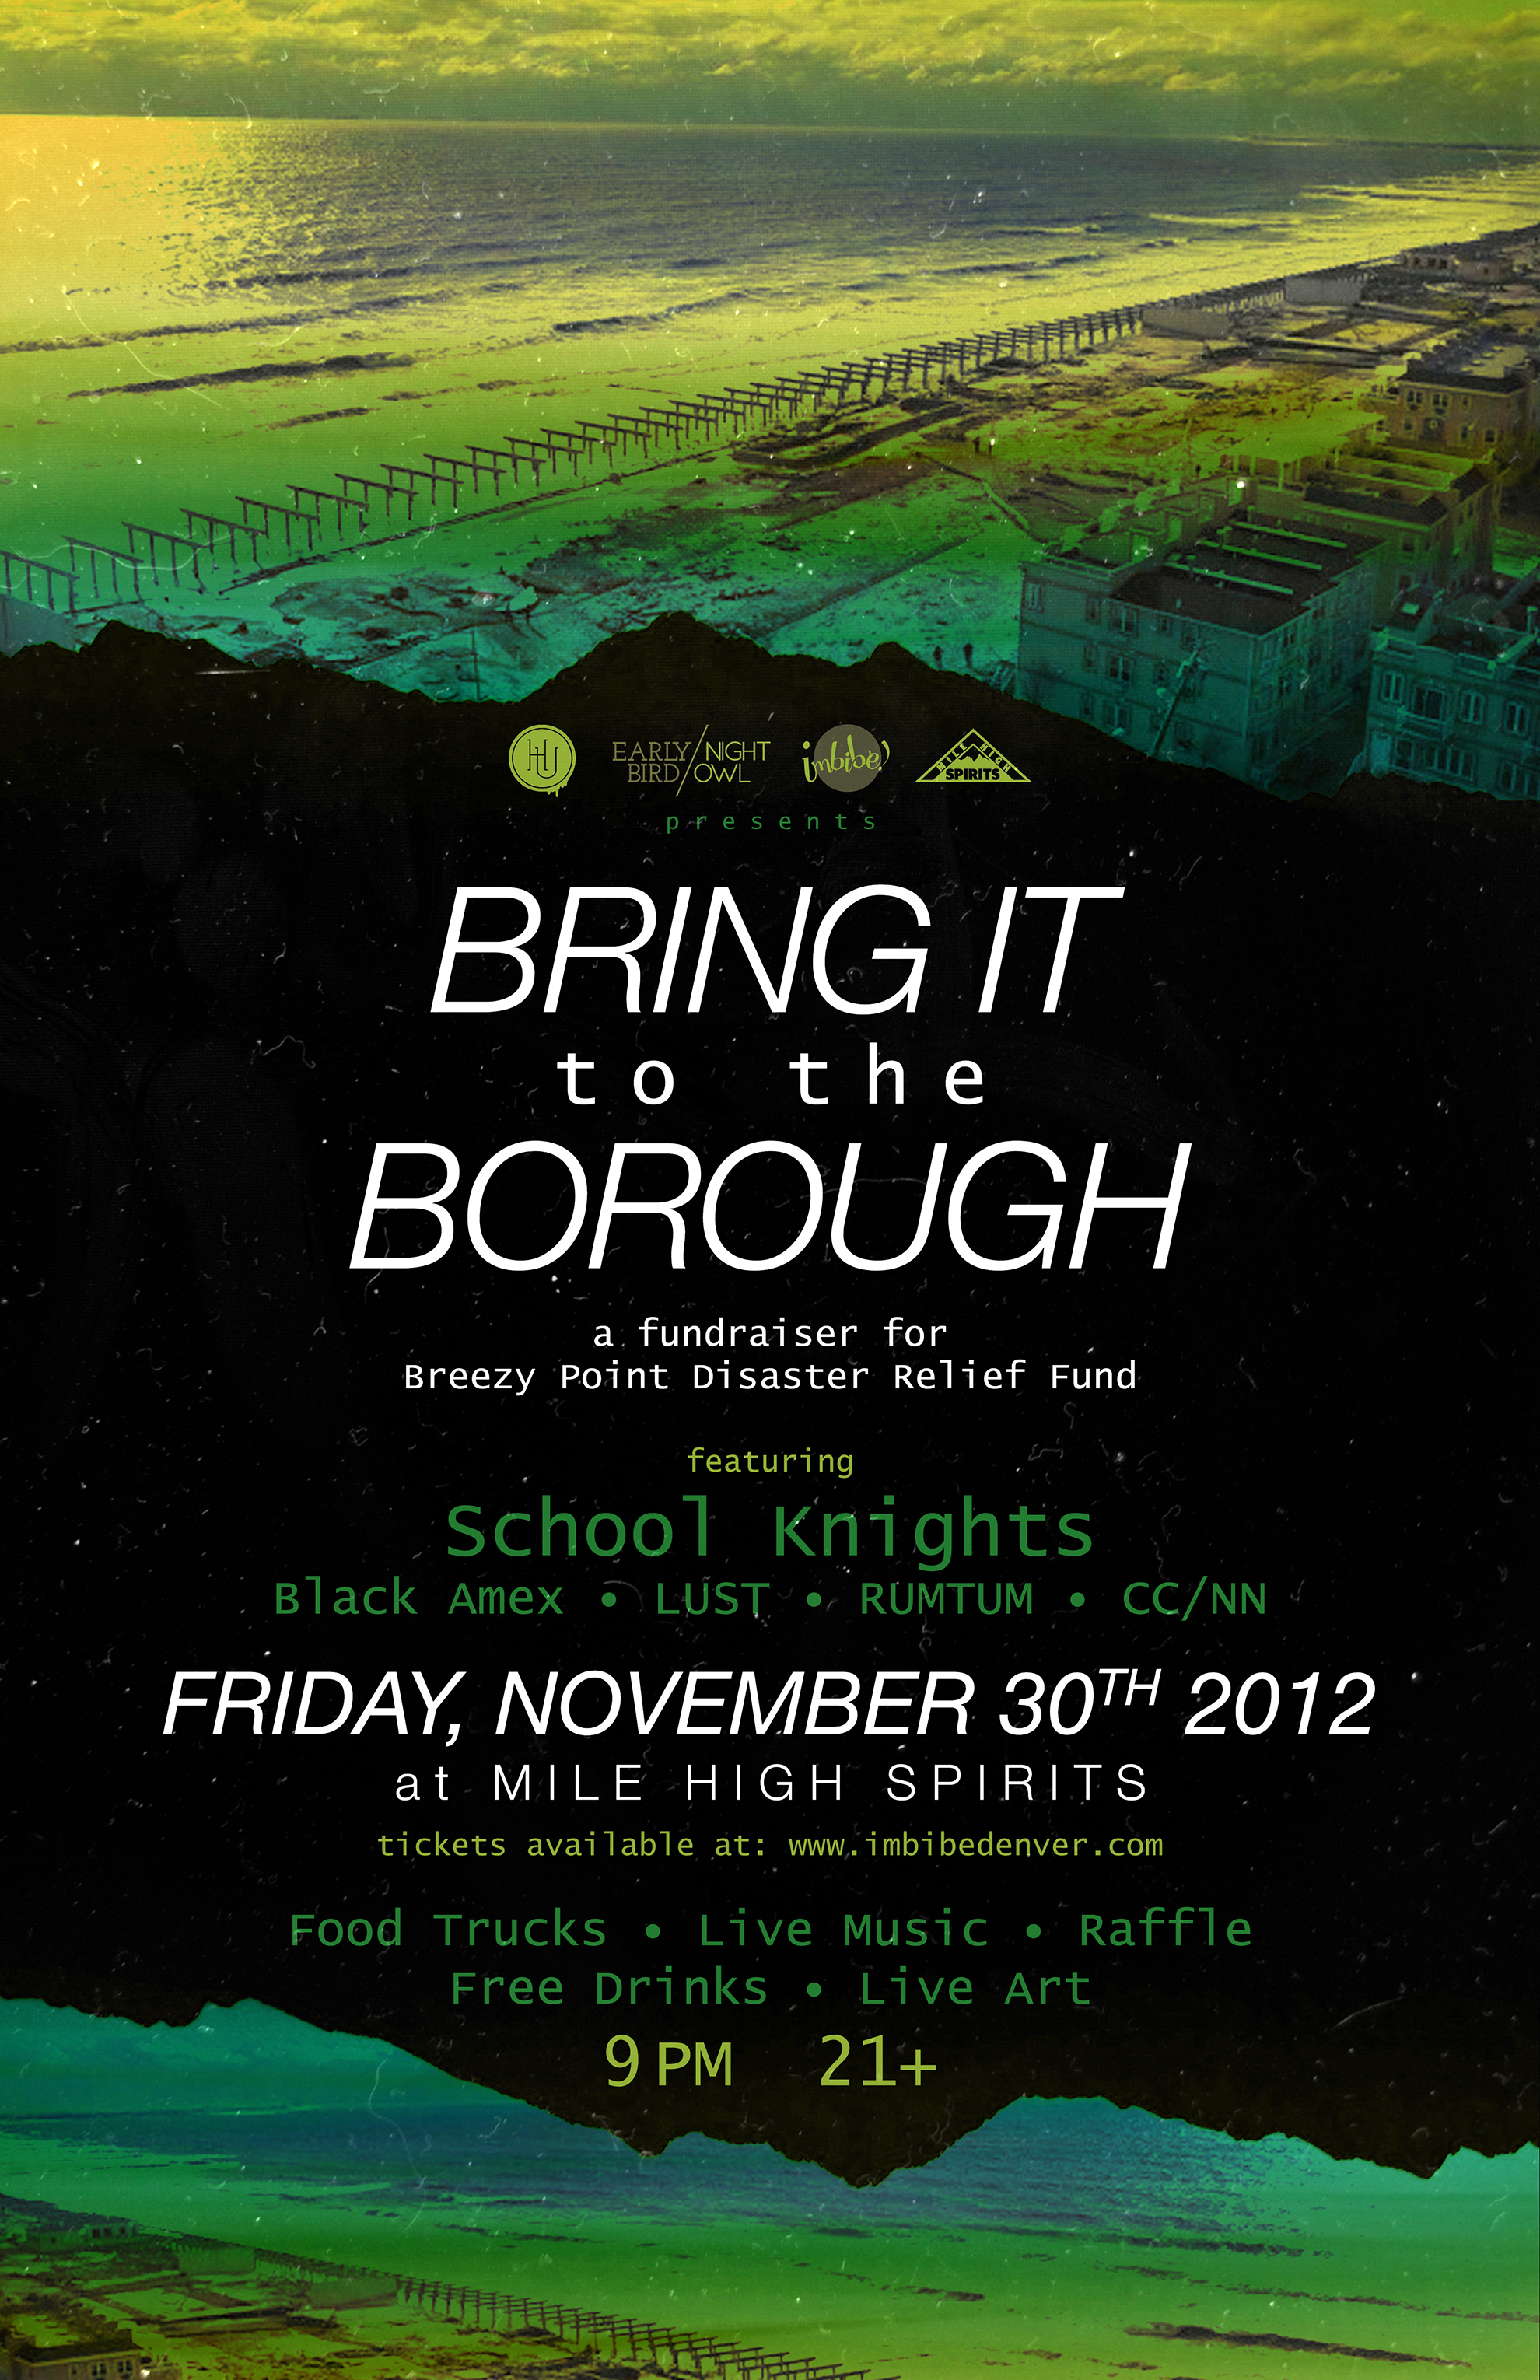 Bring it to the Borough - FINAL.jpg